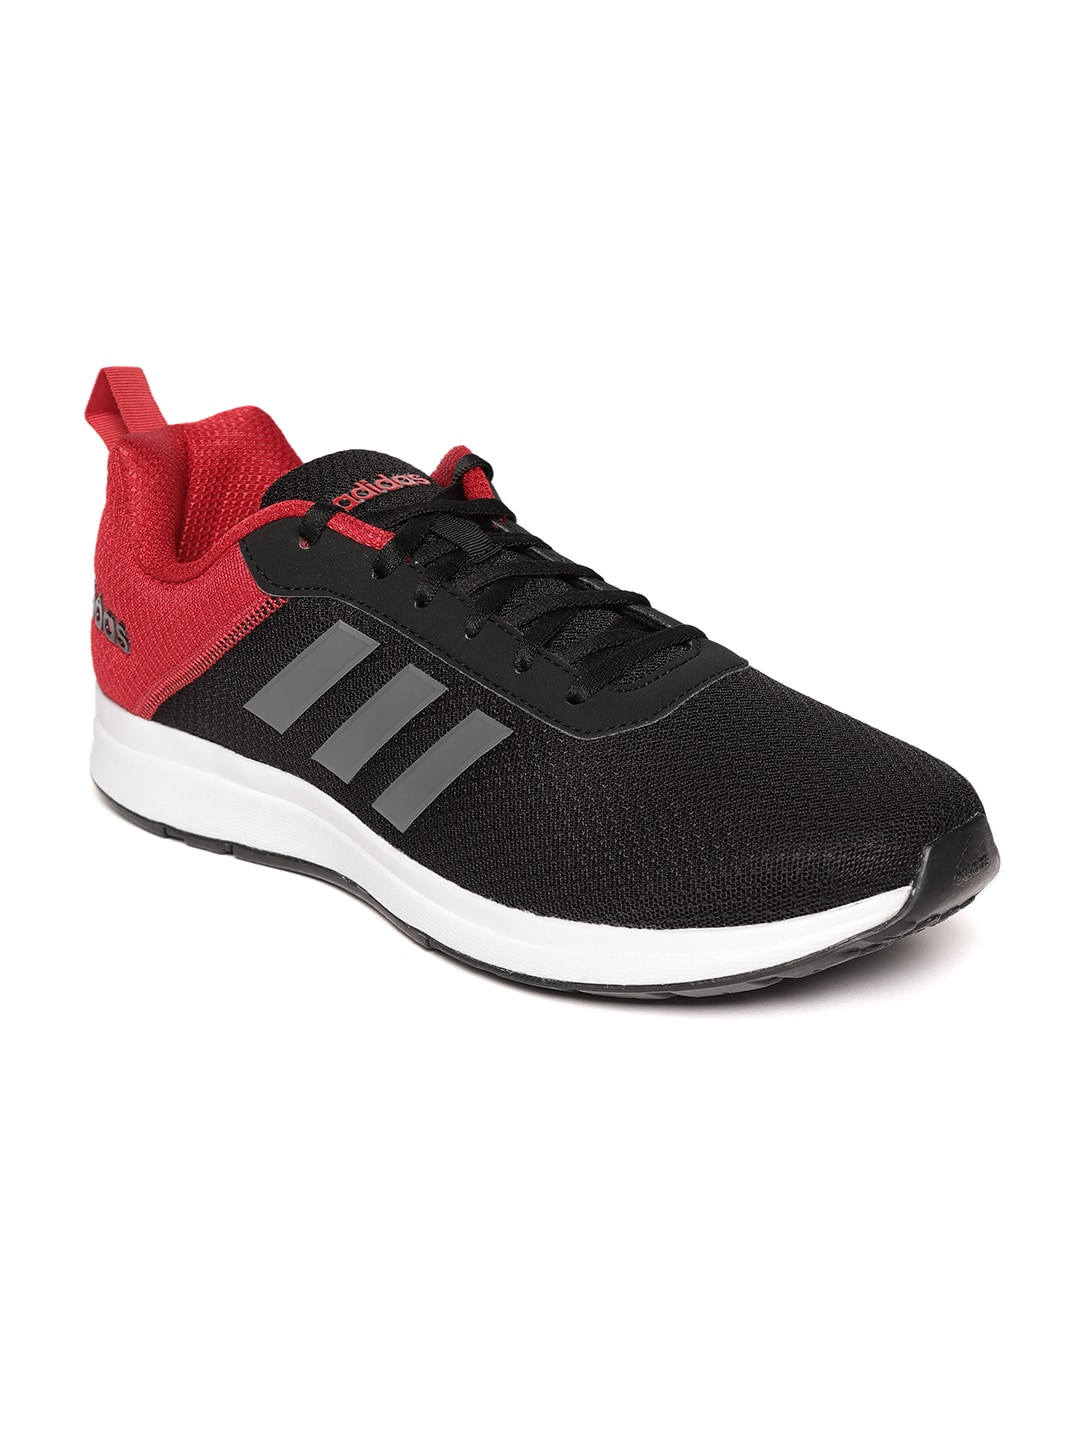 Adidas Shoes - Buy Adidas Shoes for Men   Women Online - Myntra 6763e96623c6